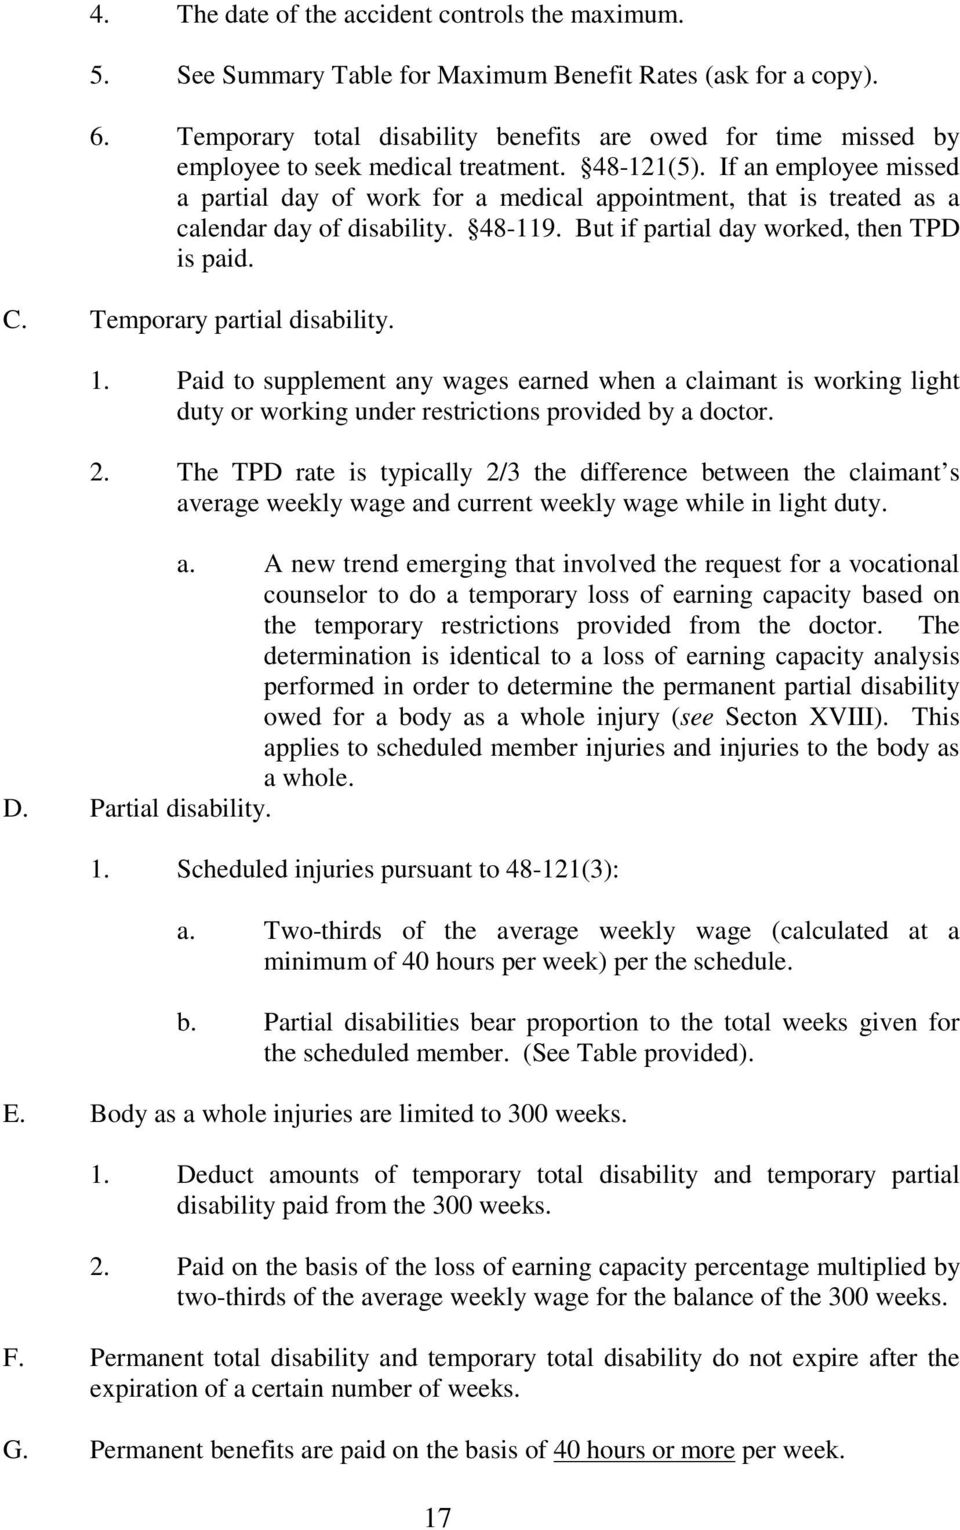 If an employee missed a partial day of work for a medical appointment, that is treated as a calendar day of disability. 48-119. But if partial day worked, then TPD is paid. C.